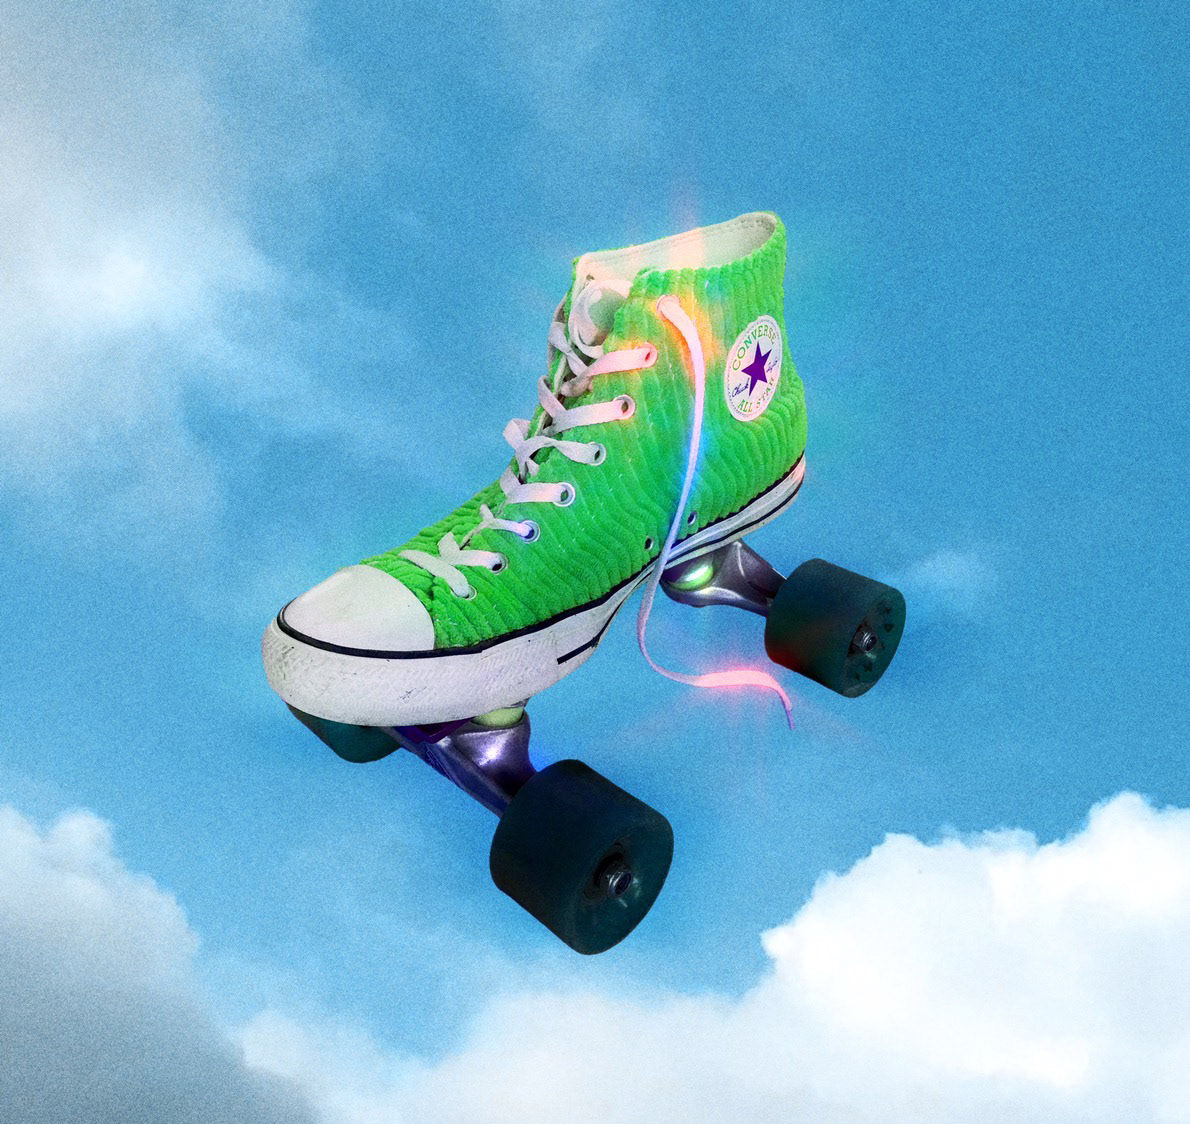 Skate Shoes 2 On Behance